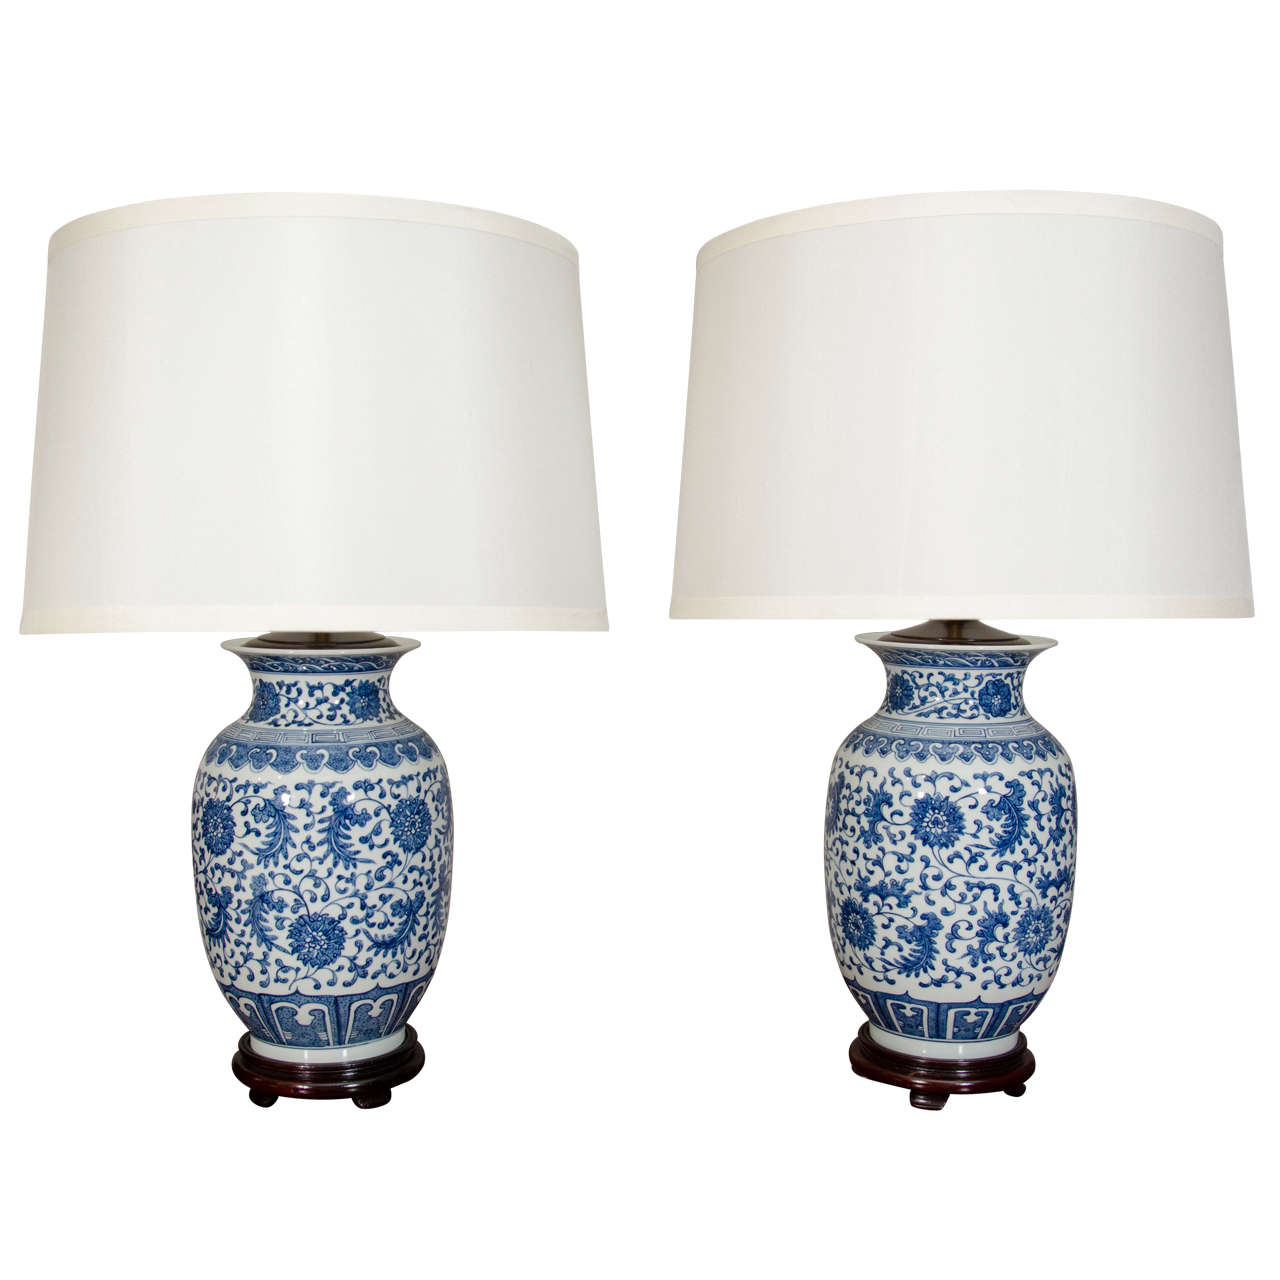 Pair Of Blue And White Porcelain Chinese Ginger Jar Lamps For Sale